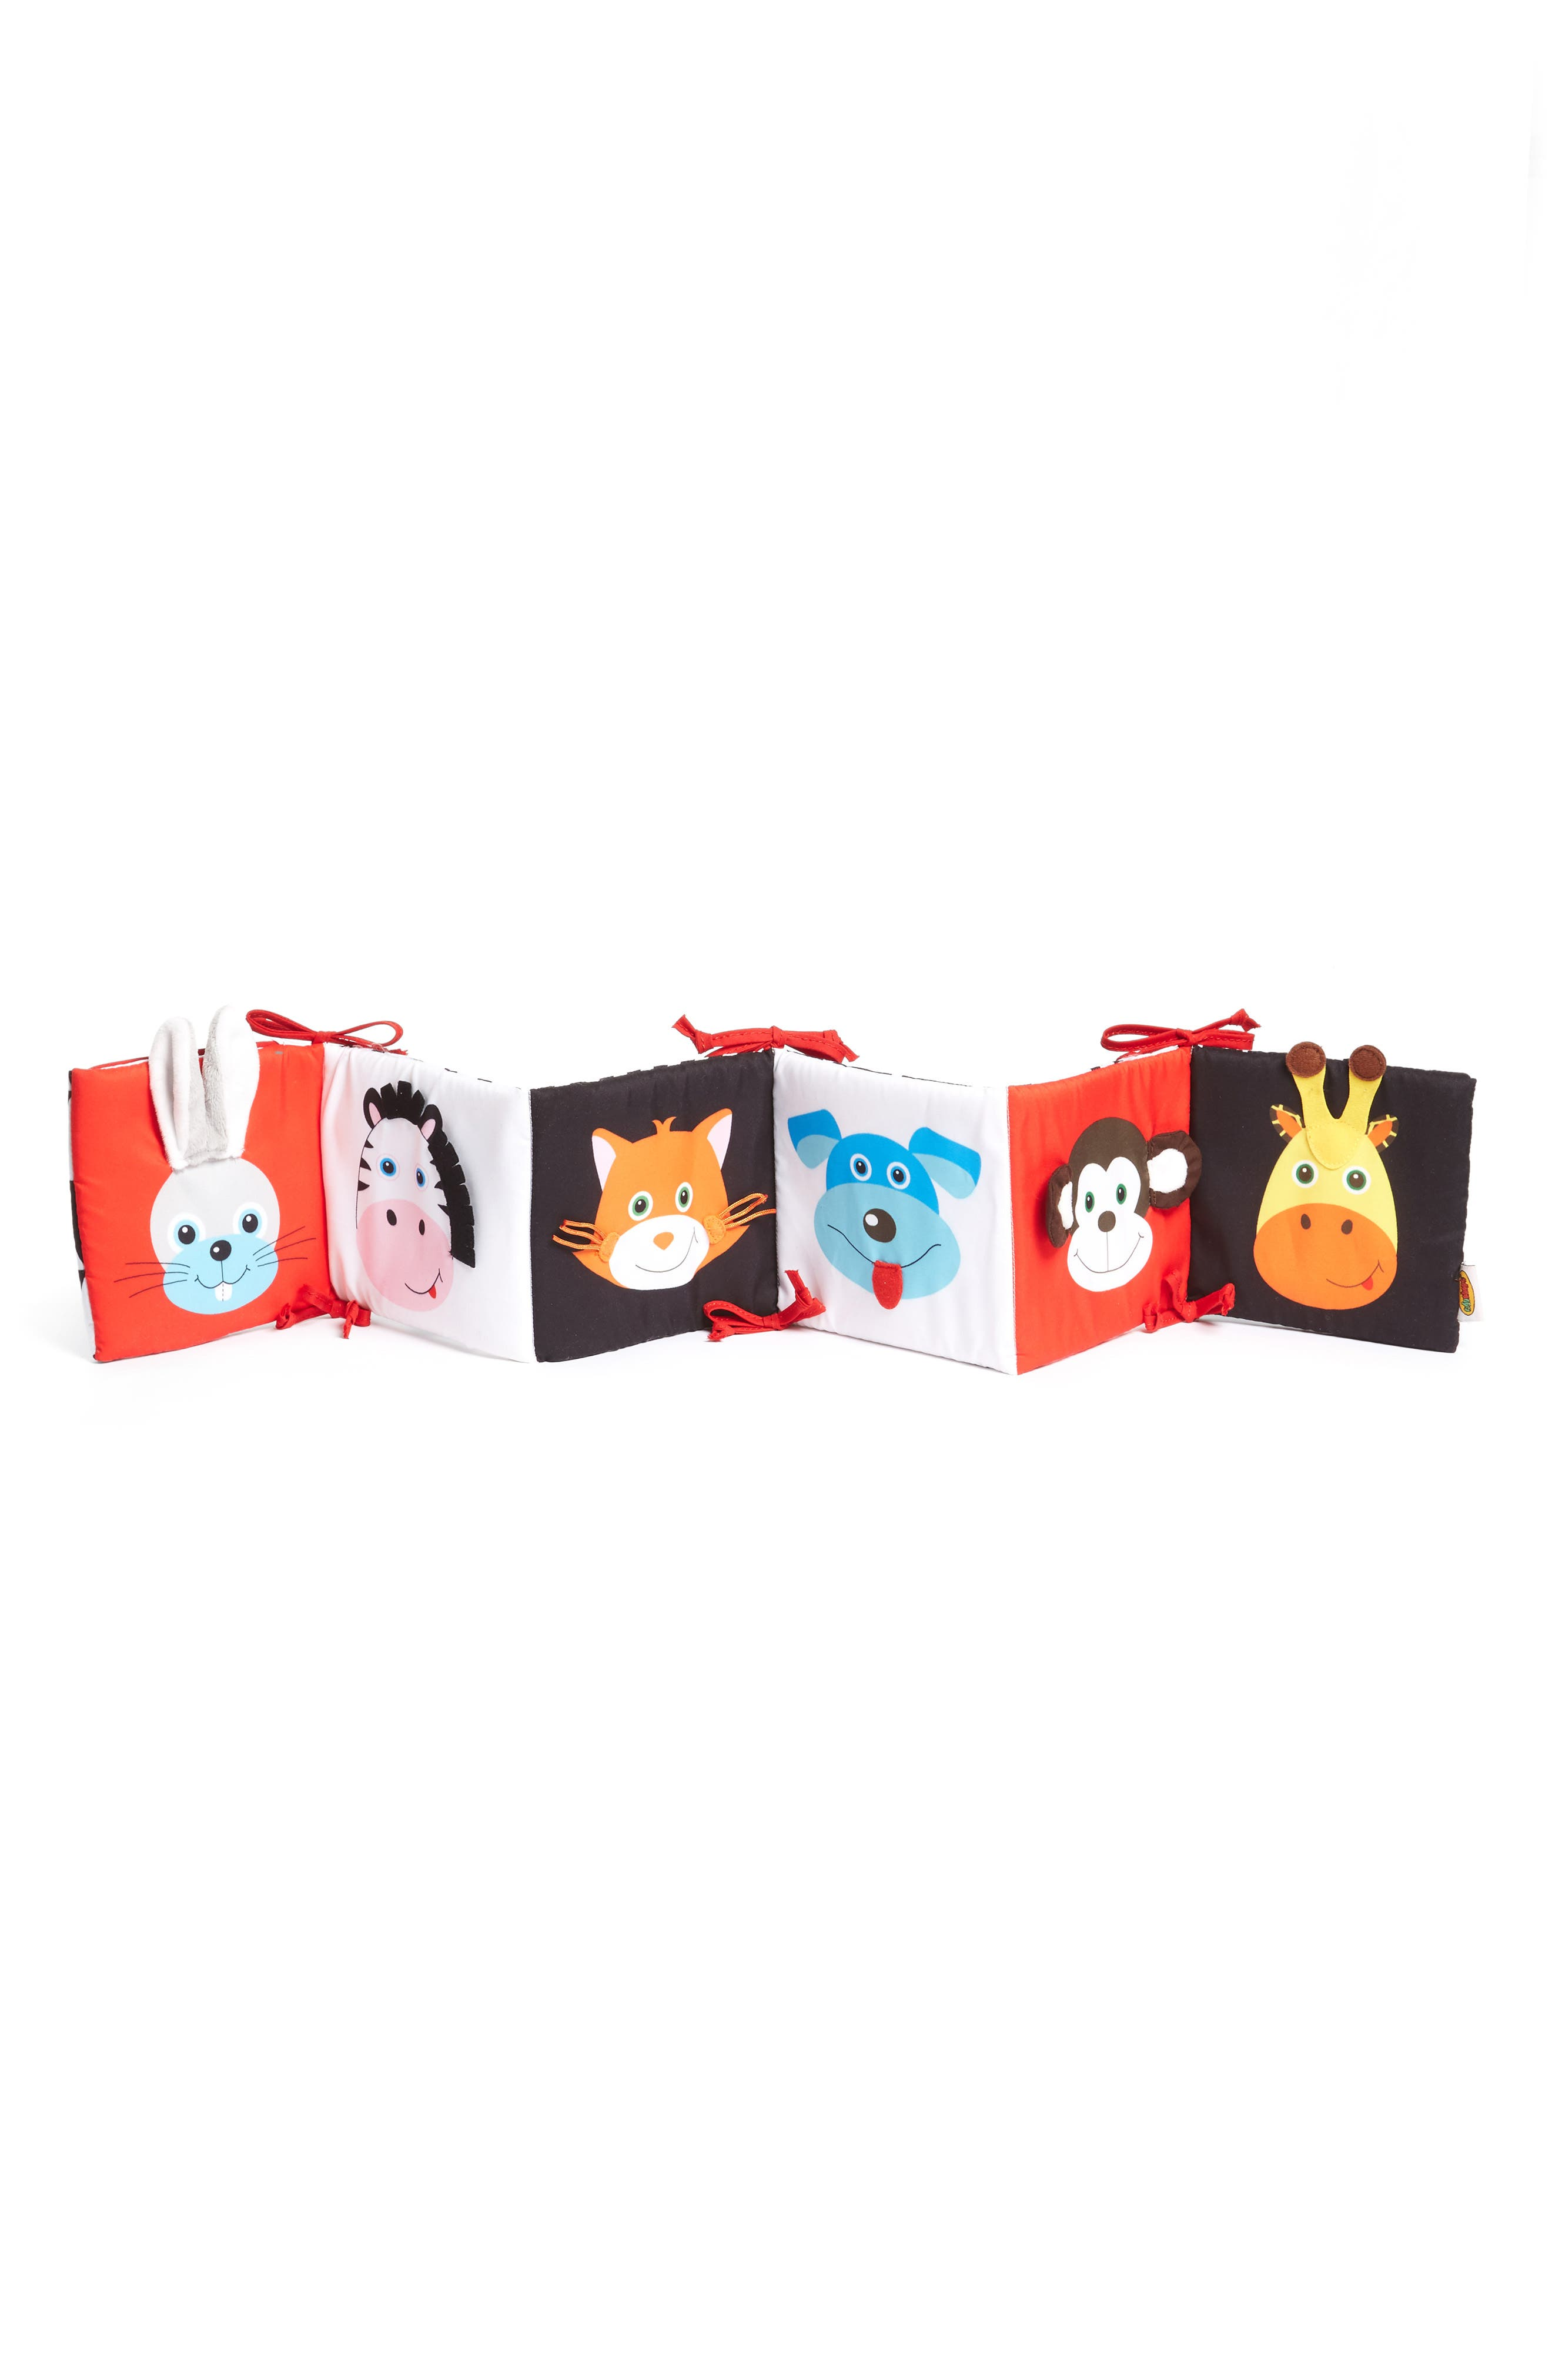 Look and Feel Accordion Fold Baby Book,                             Alternate thumbnail 2, color,                             White/ Red